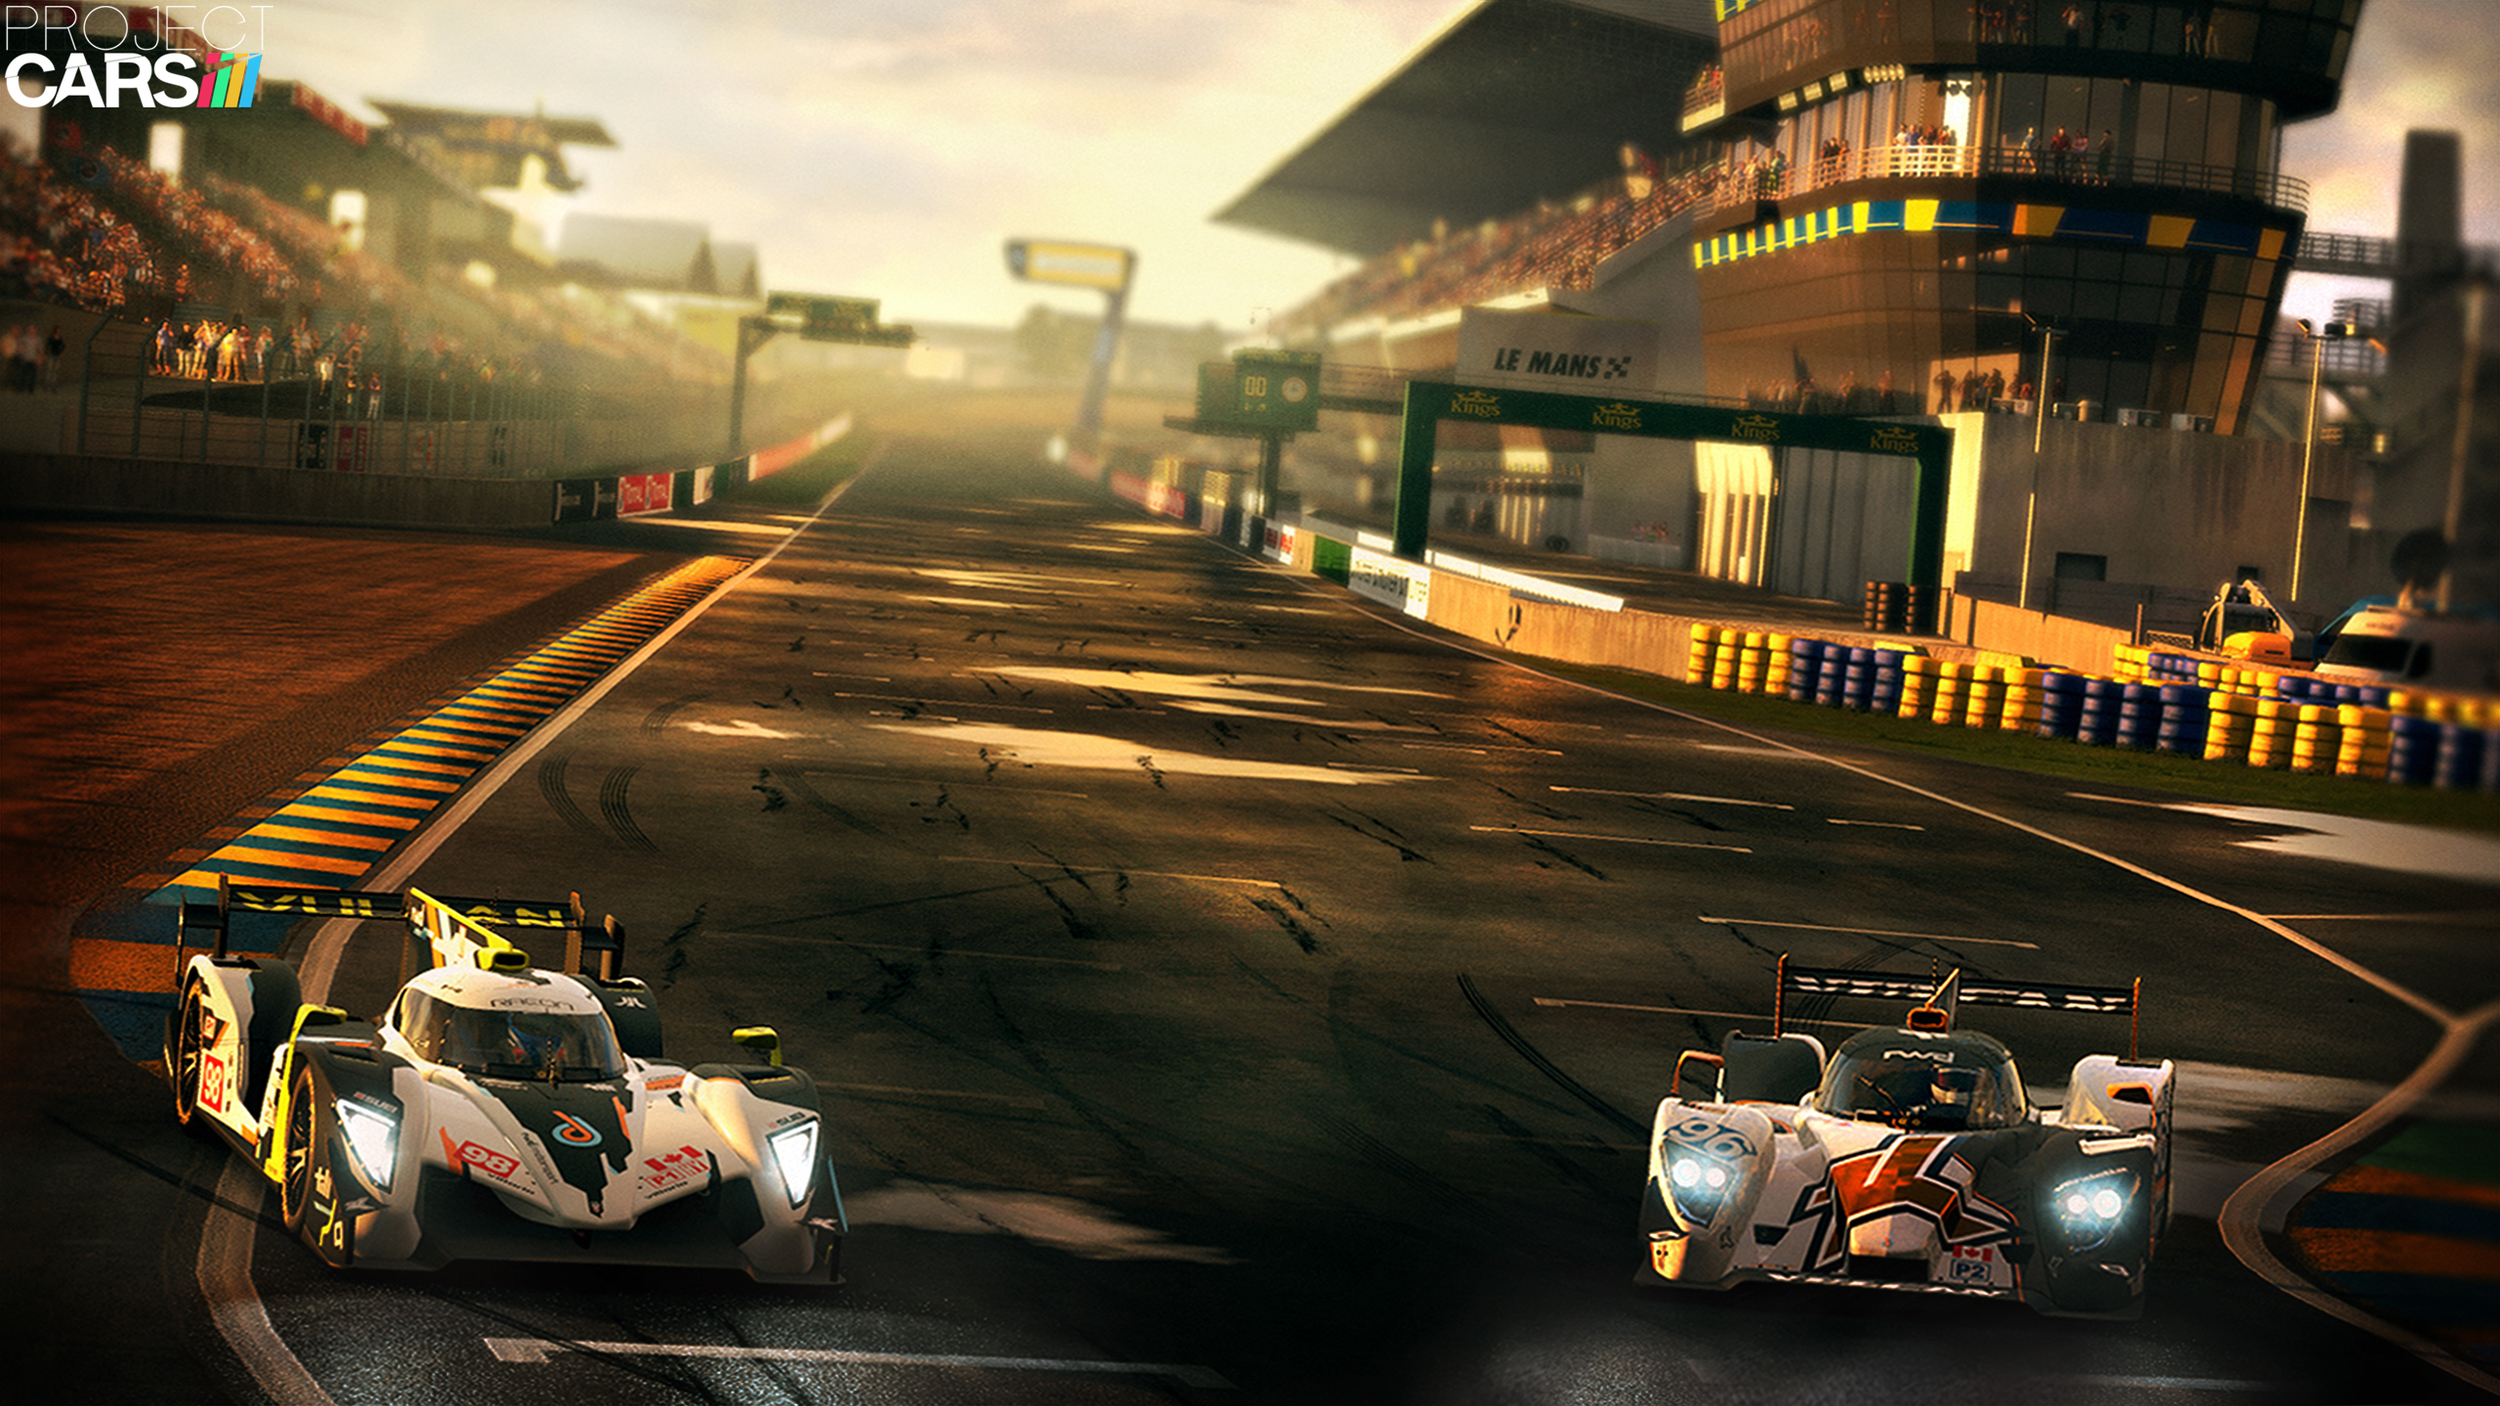 Edited screenshot created for a Project CARS community member   Project CARS